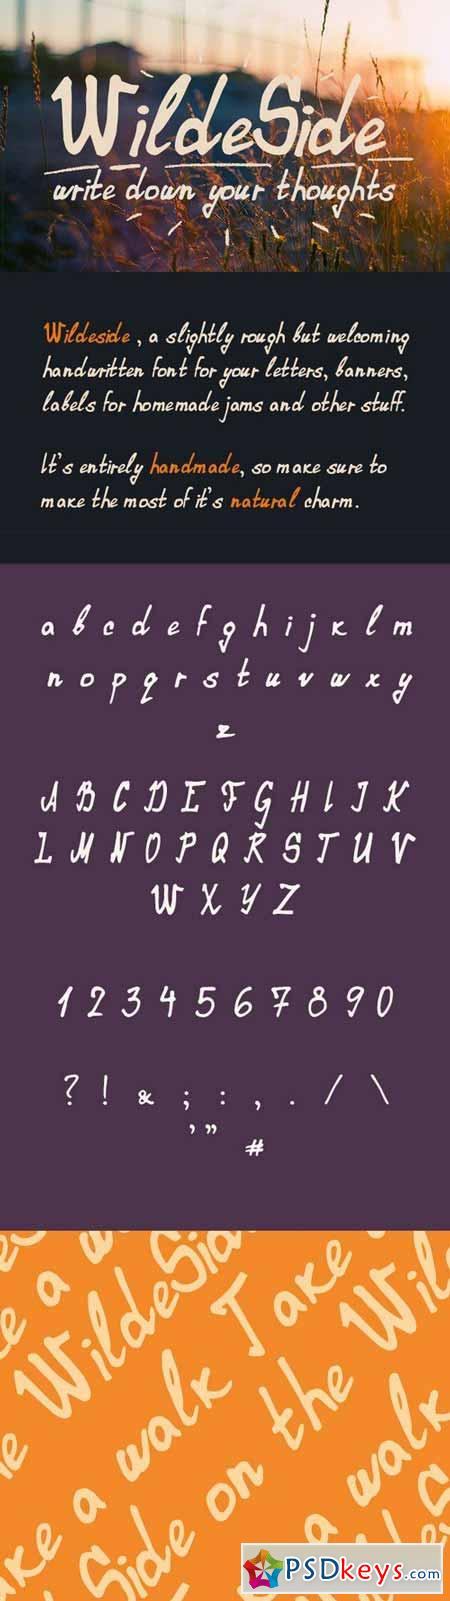 Wildeside Font